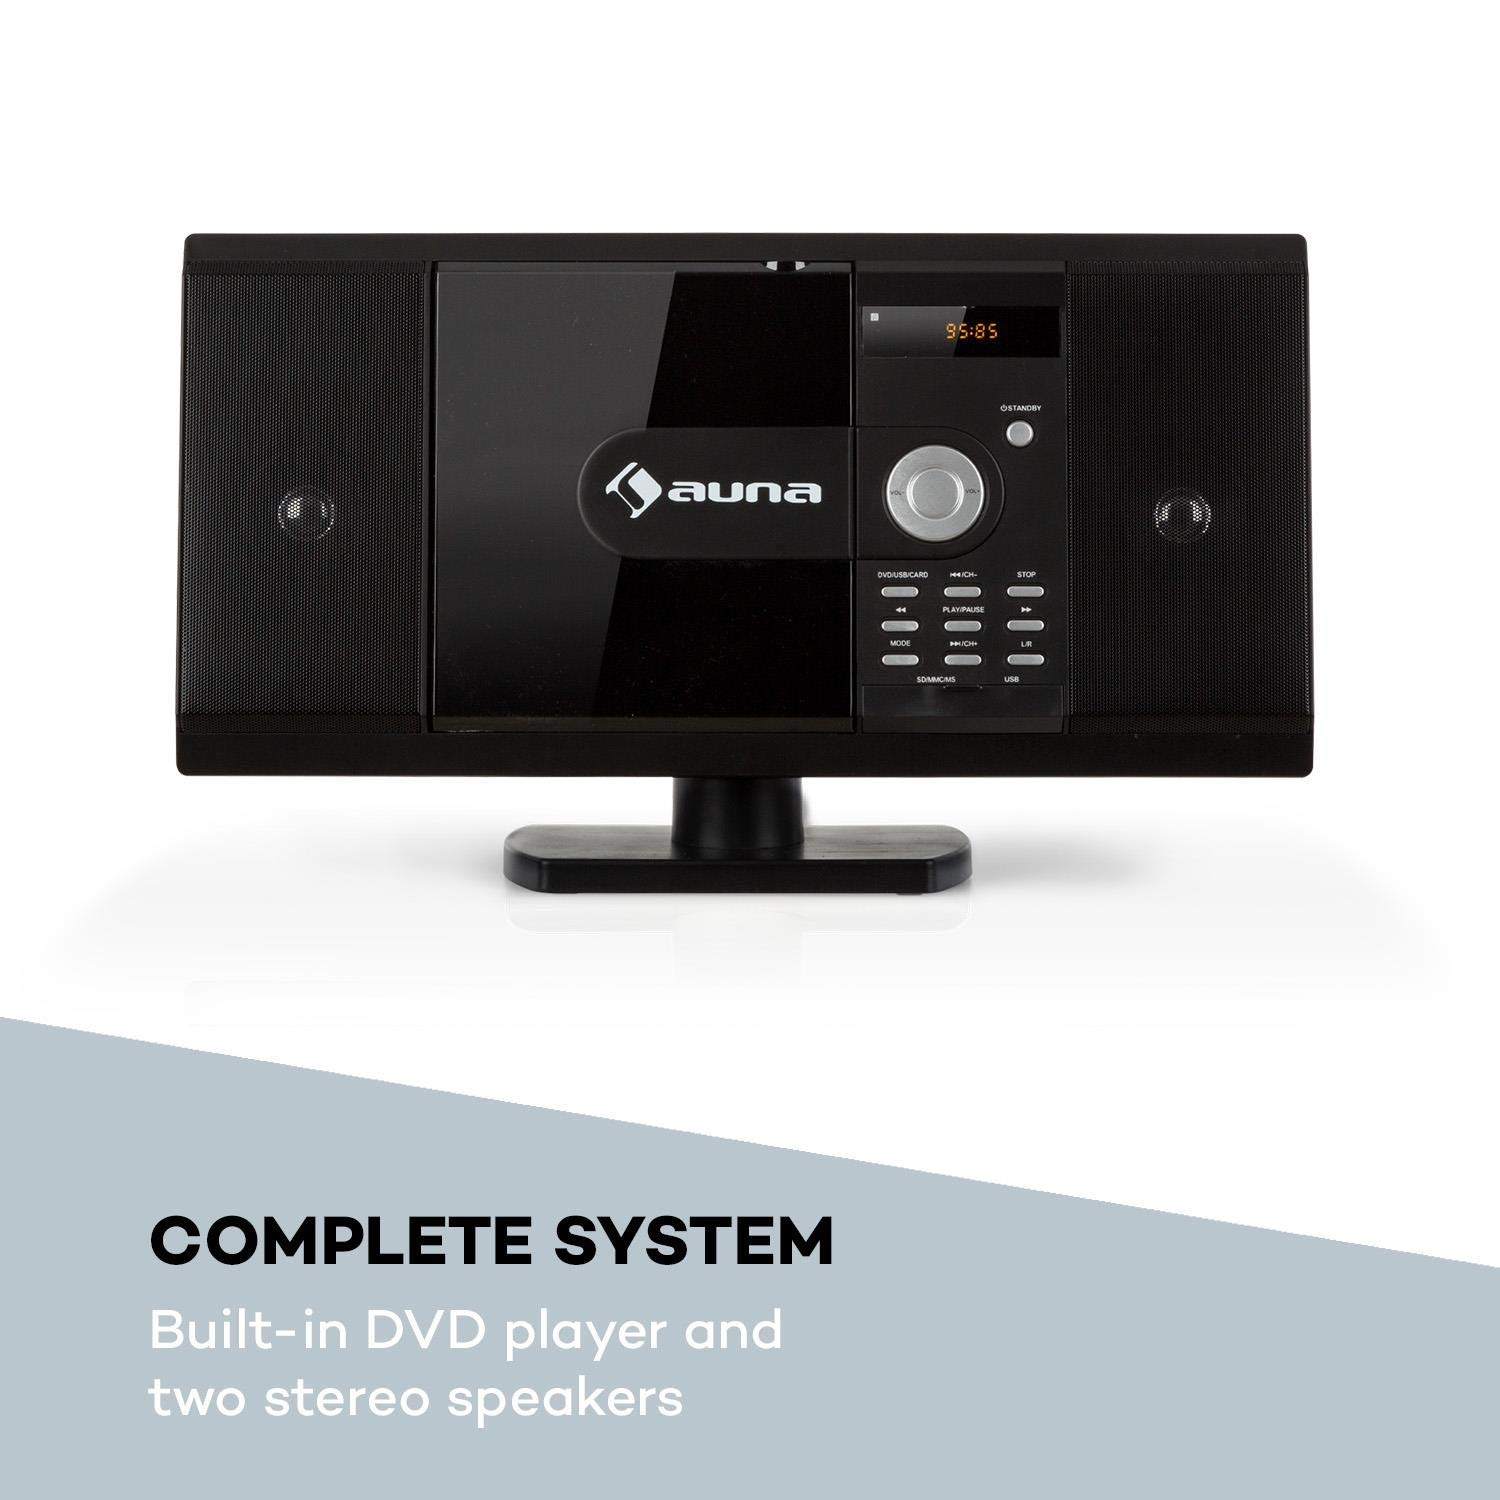 auna MCD-82 BT /• Vertikal Stereoanlage /• Kompaktanlage /• Microanlage /• DVD- // CD-Player /• Bluetooth /• USB-Port // SD-Slot /• UKW Radio /• HDMI /• schwarz MCD6-82 BT BK